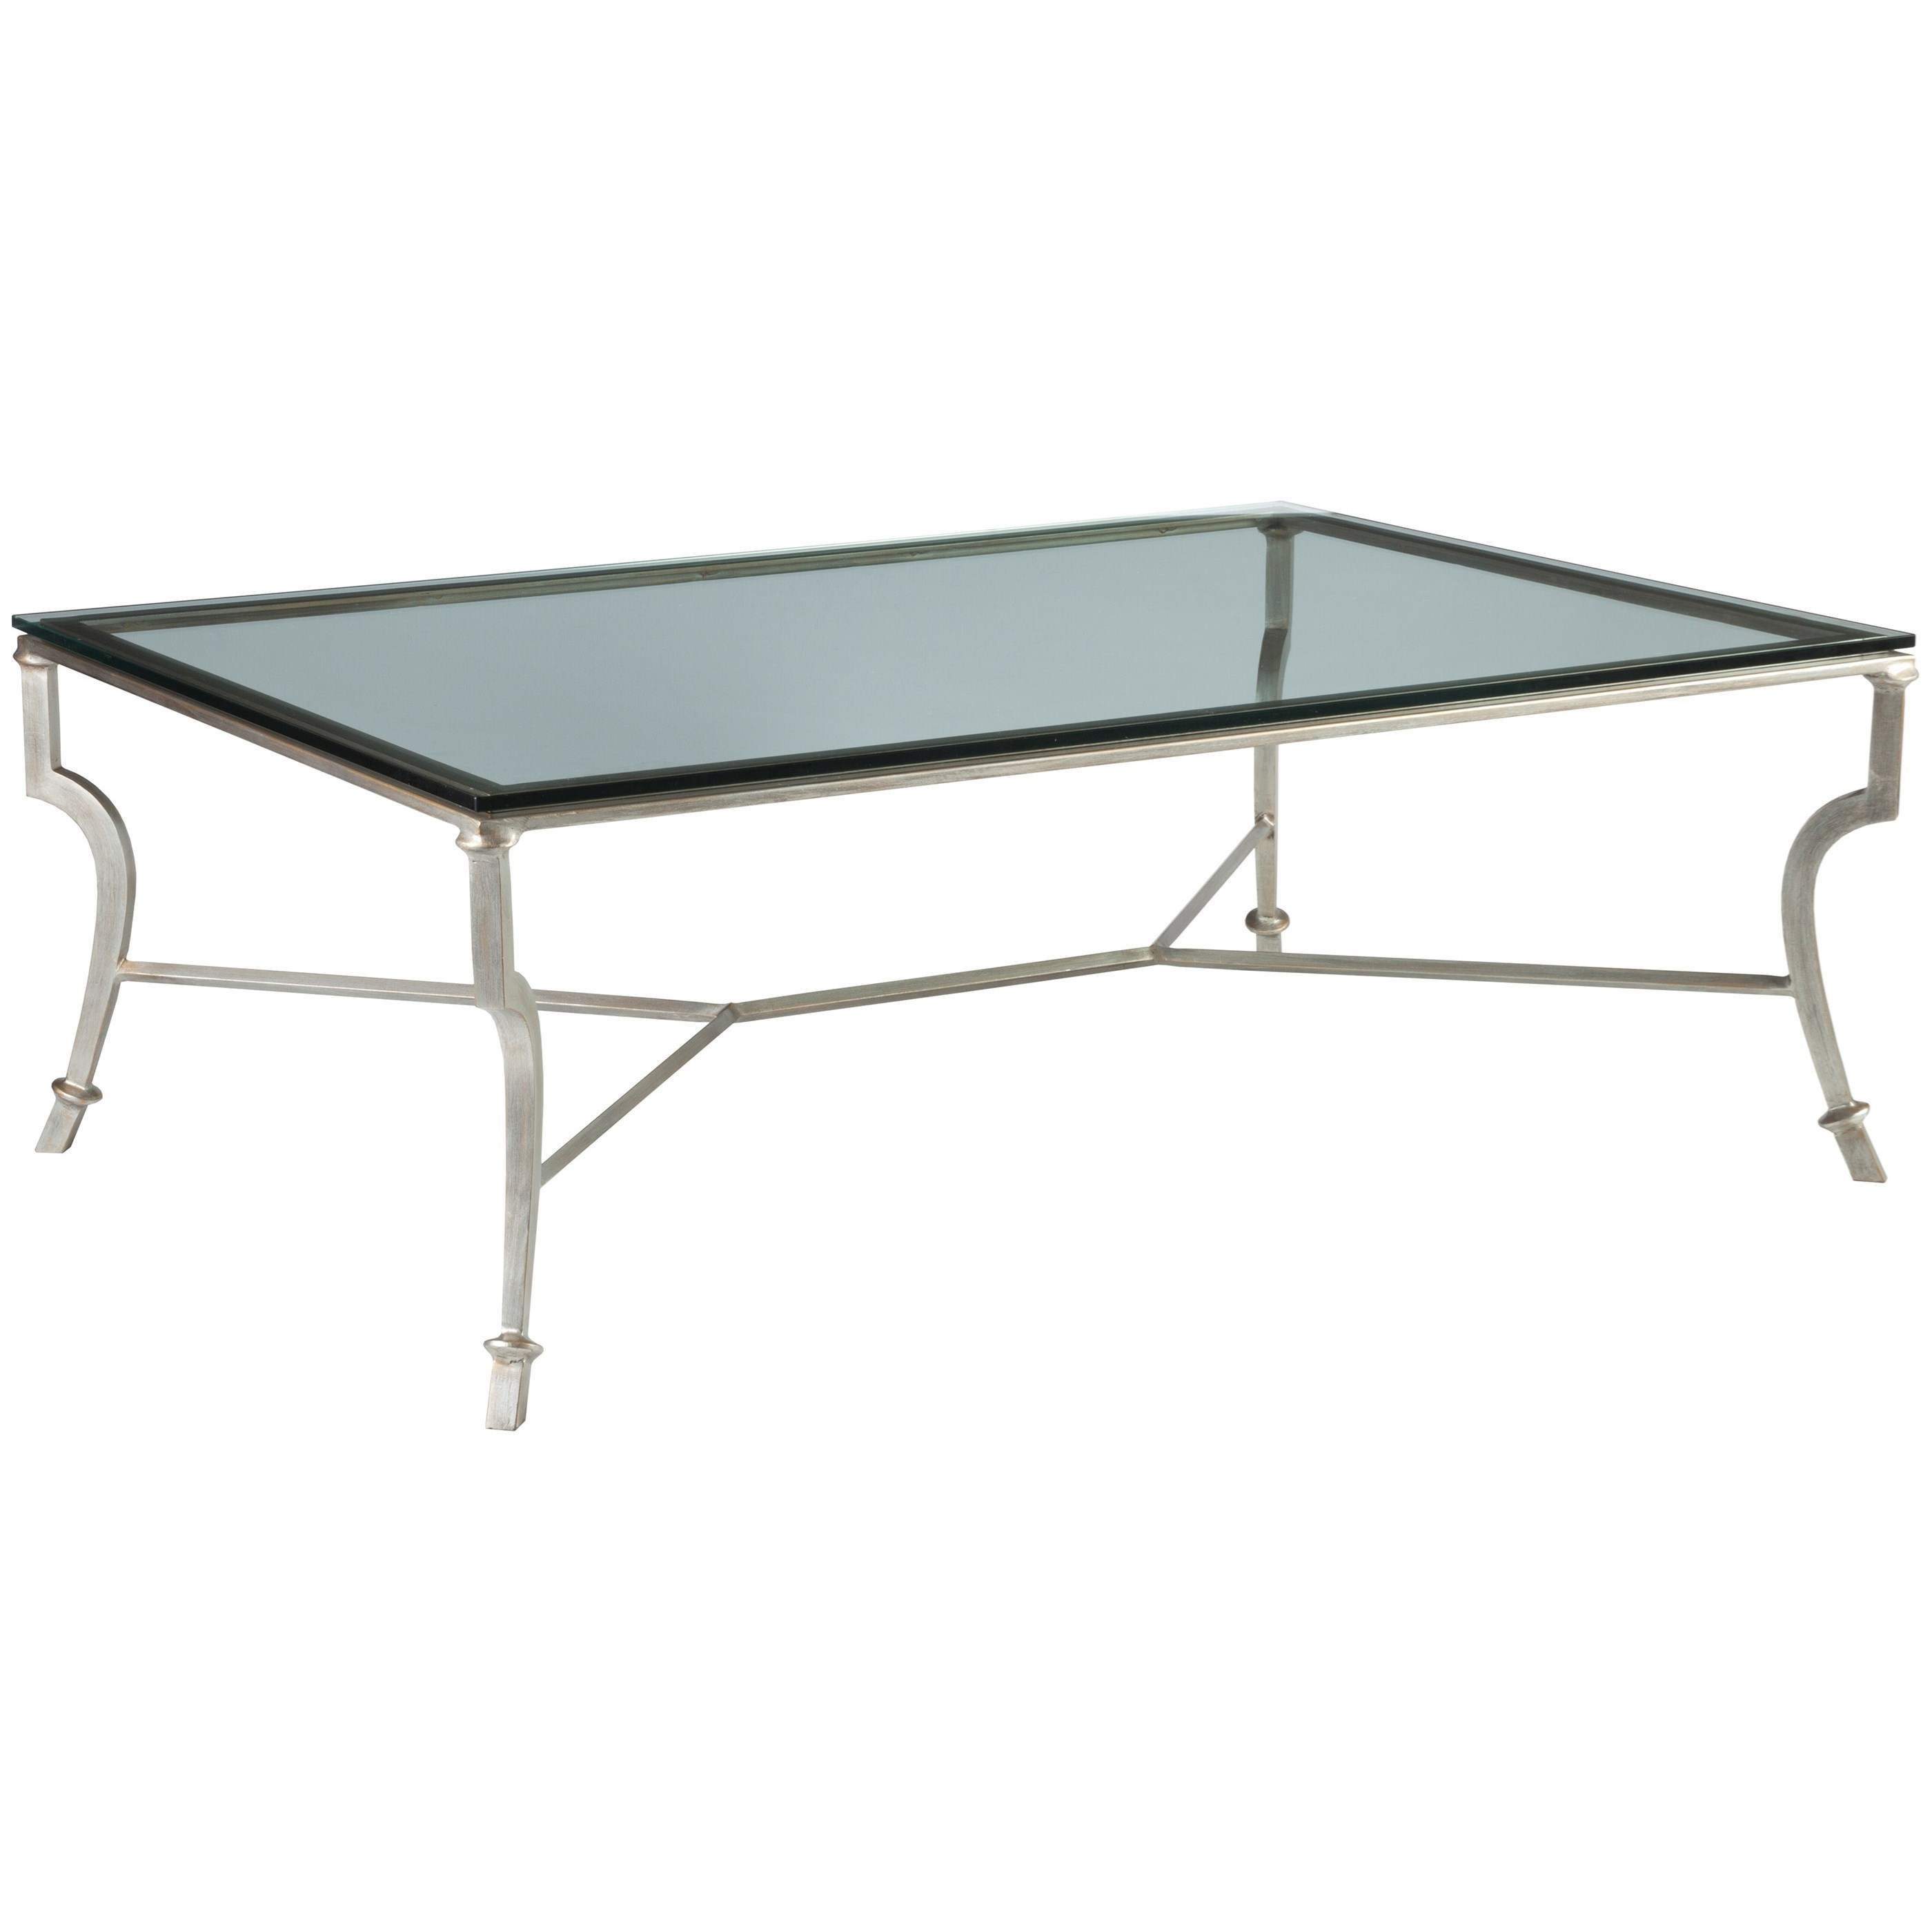 Metal Designs Syrah Large Rectangular Cocktail Table by Artistica at Alison Craig Home Furnishings